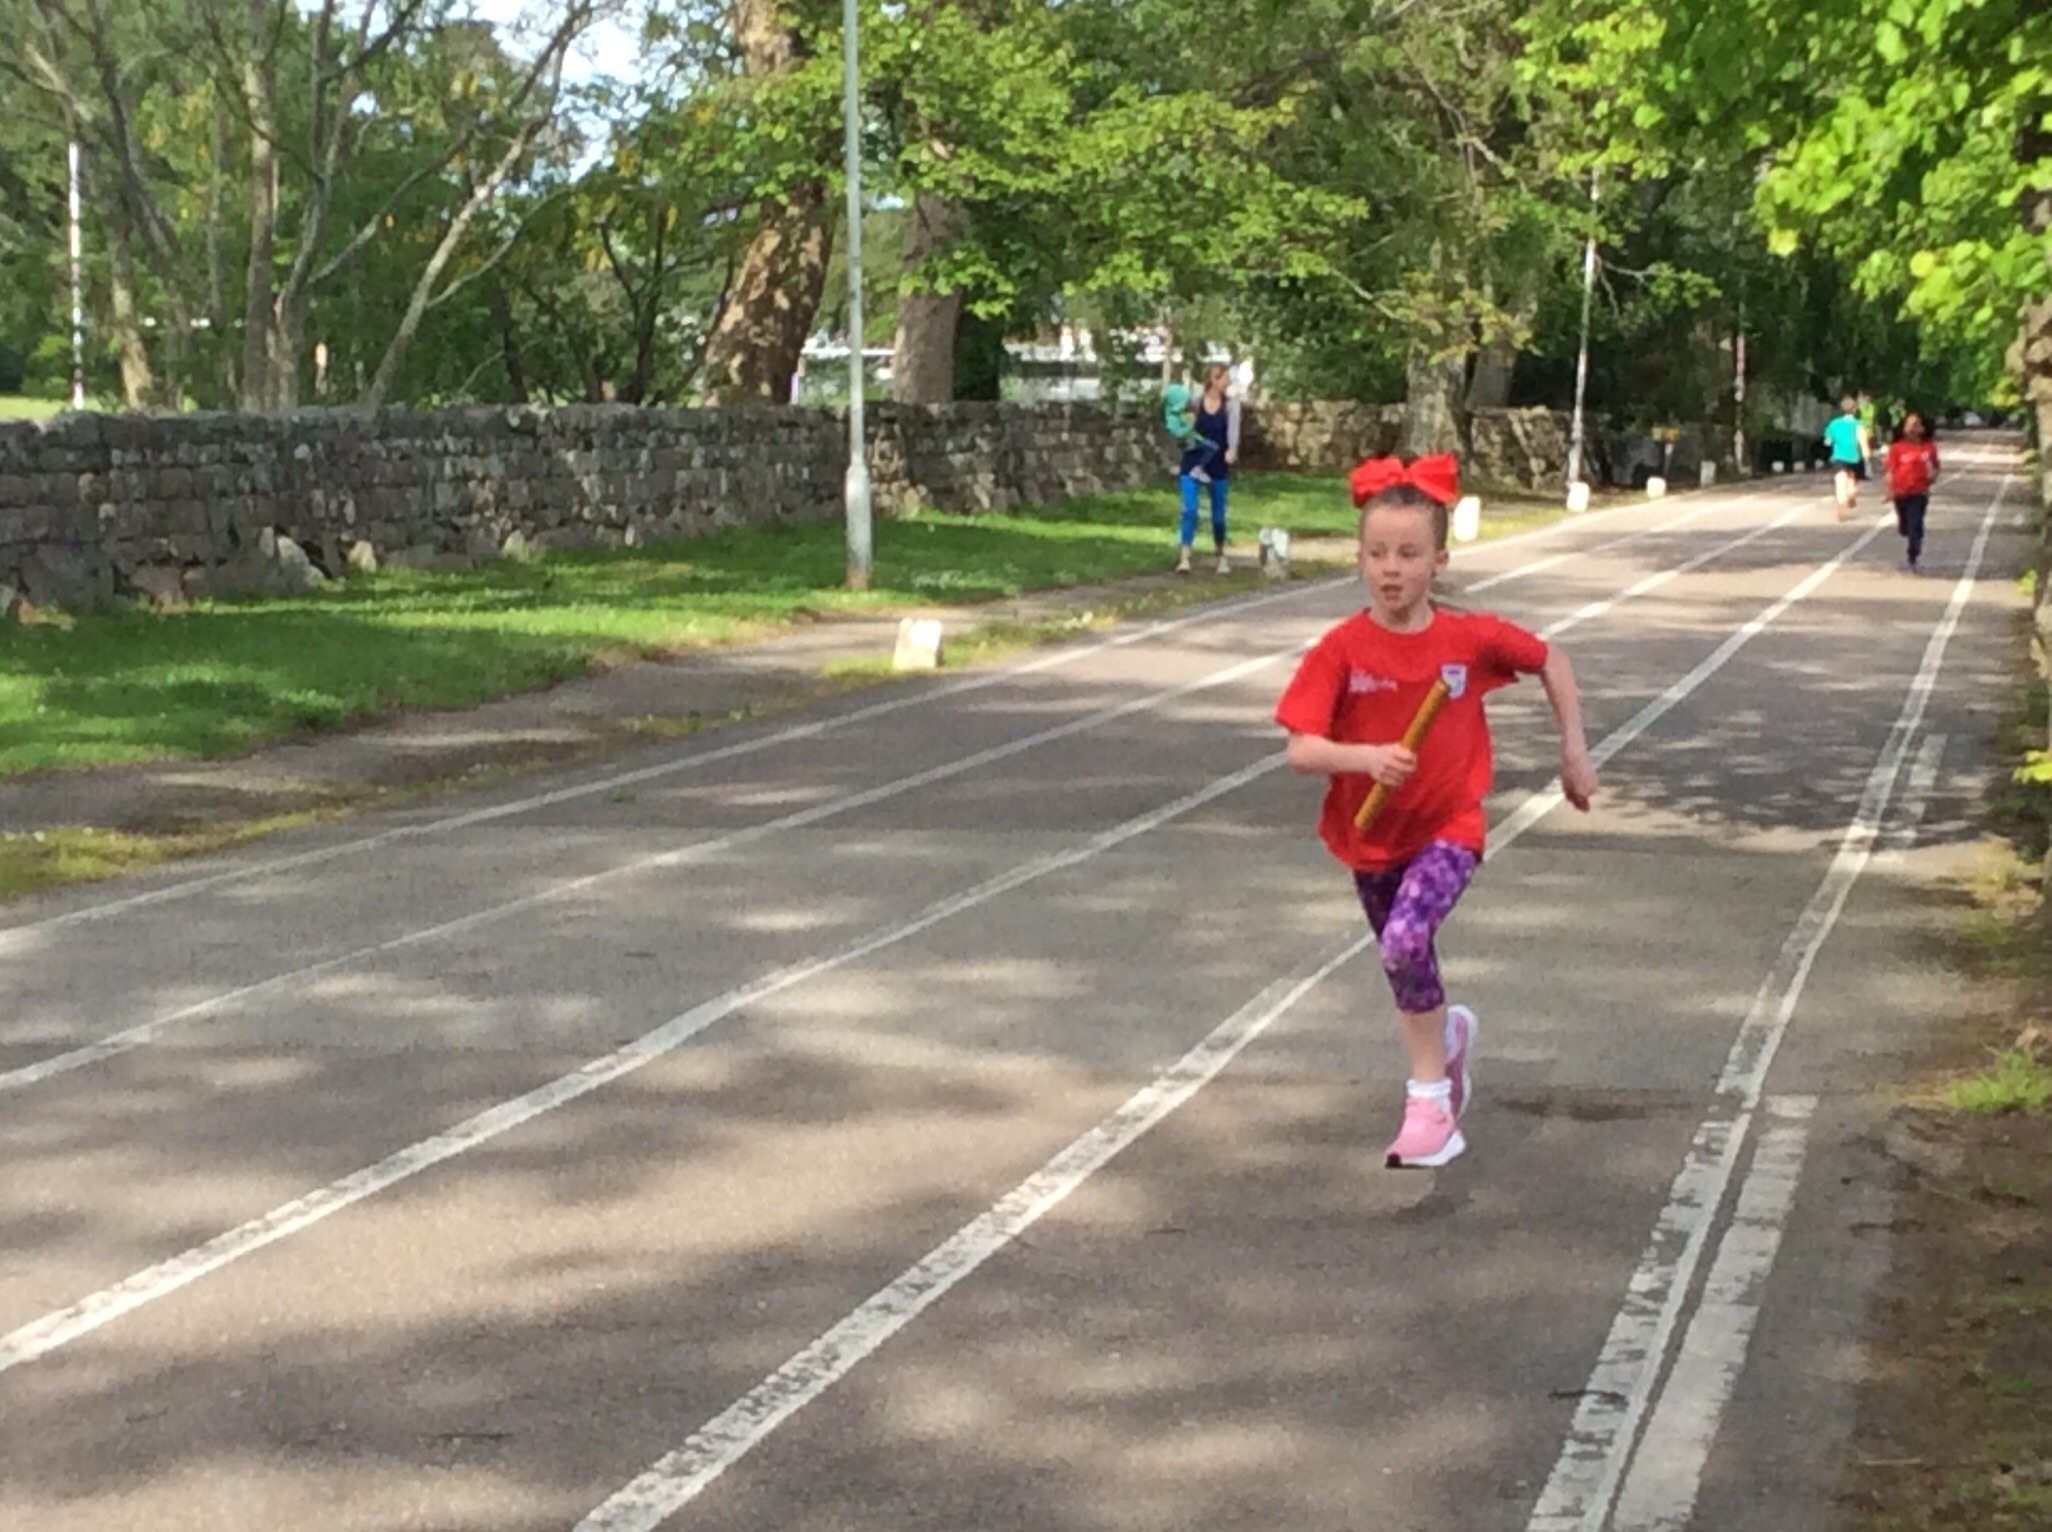 P3 Girl finishing their part of the relay